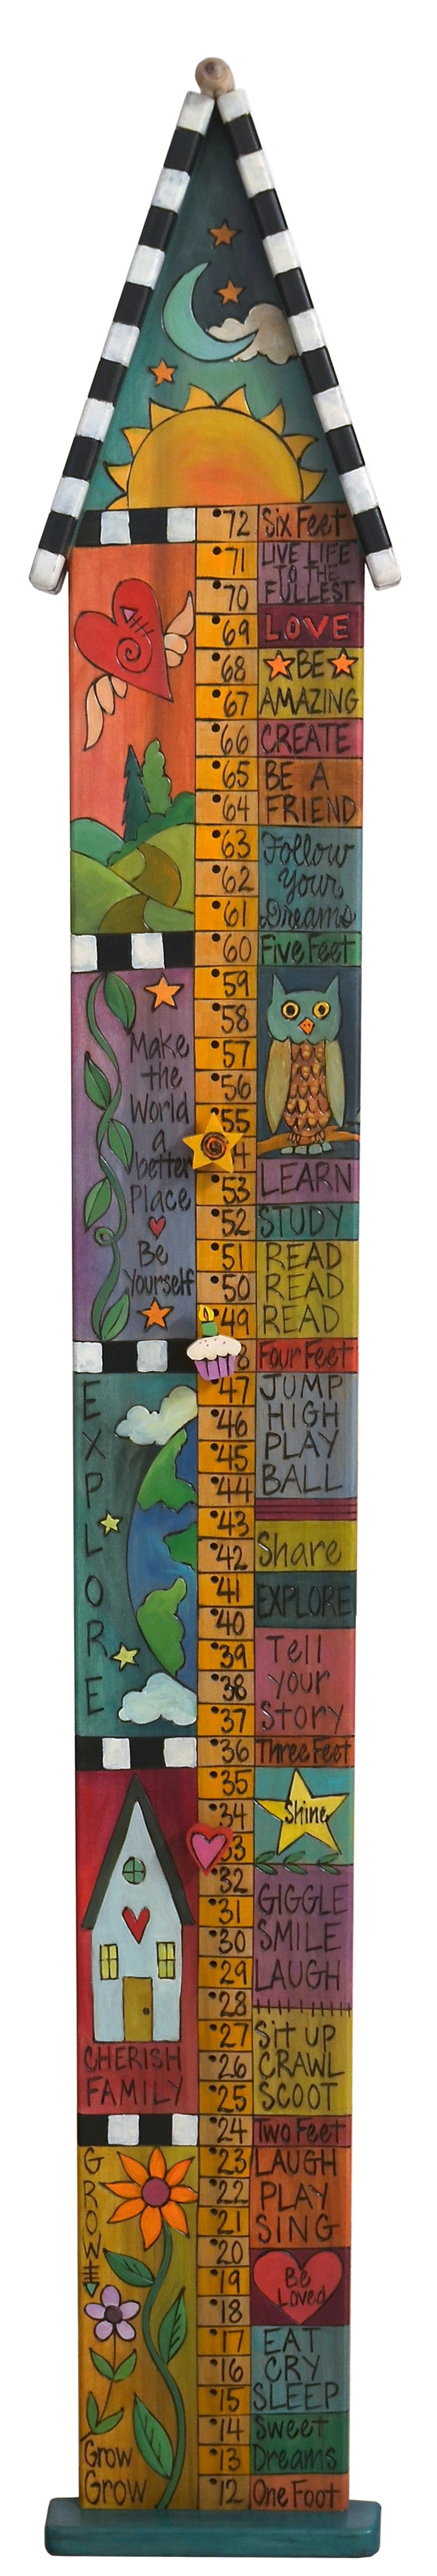 "Growth Chart with Pegs –  ""Cherish Family"" growth chart with pegs with sun and moon motif"